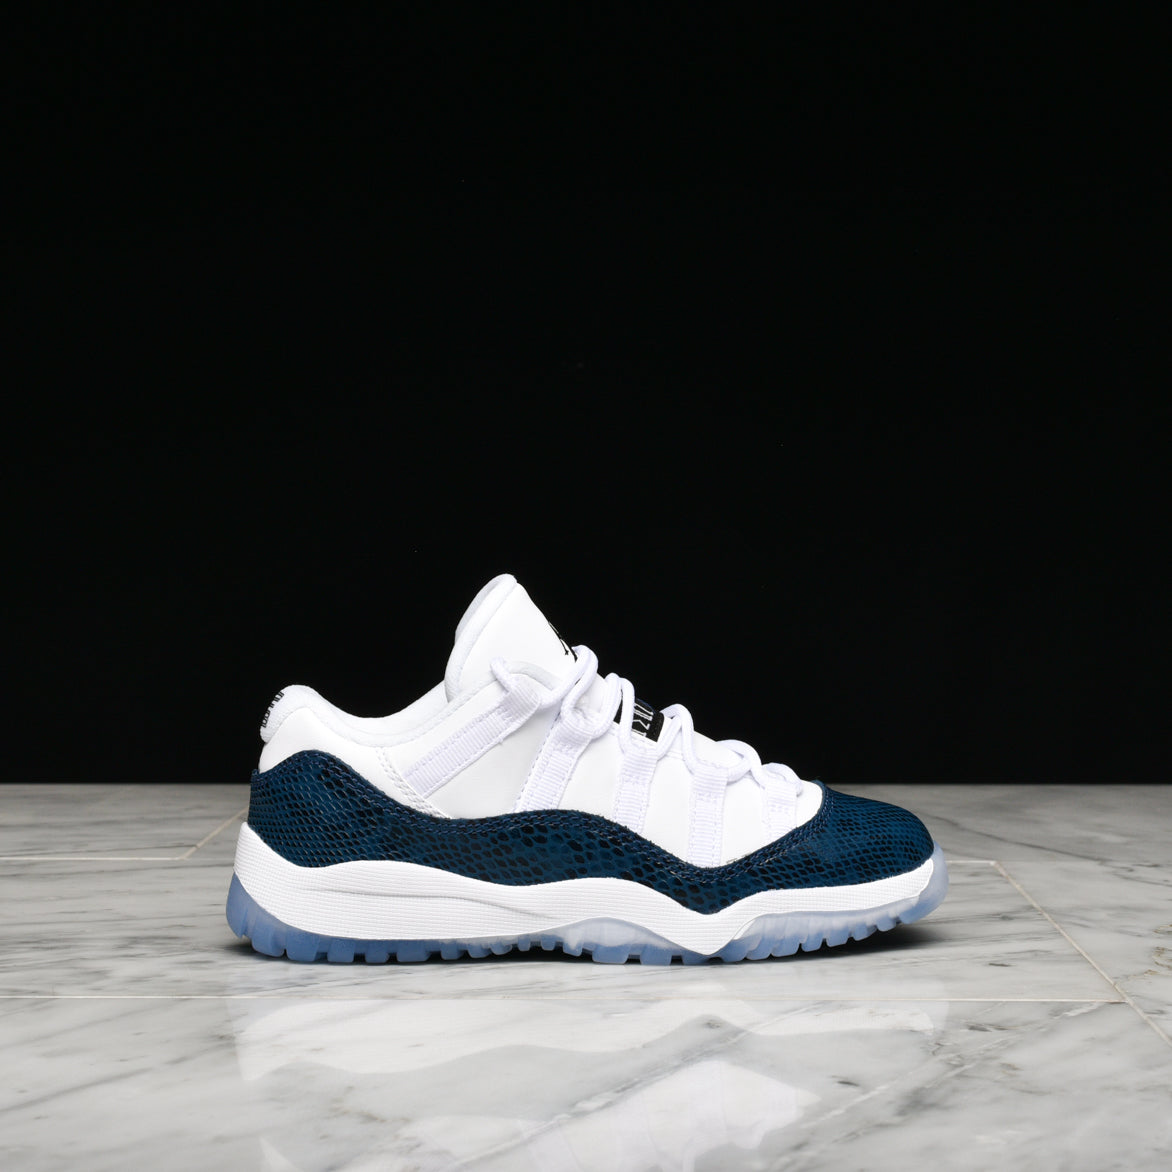 5f9910227797 AIR JORDAN 11 RETRO LOW LE (PS)